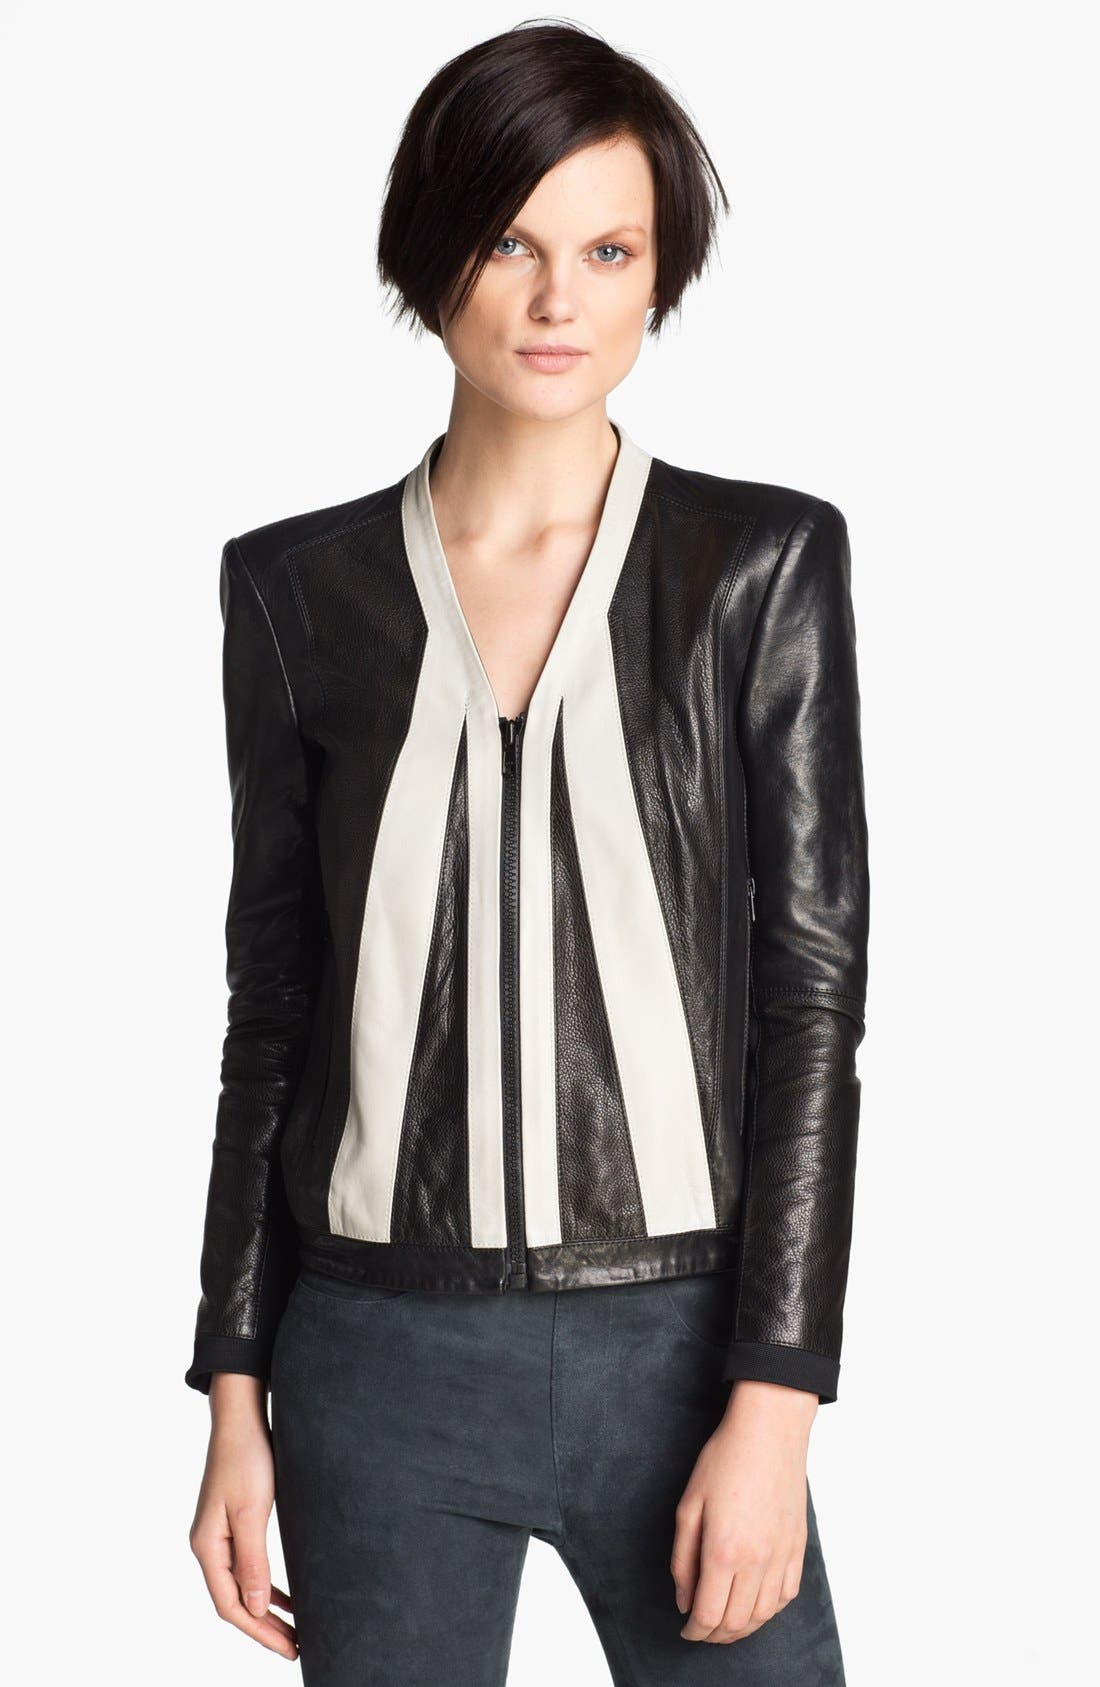 Alternate Image 1 Selected - Helmut Lang 'Evolution' Leather Jacket